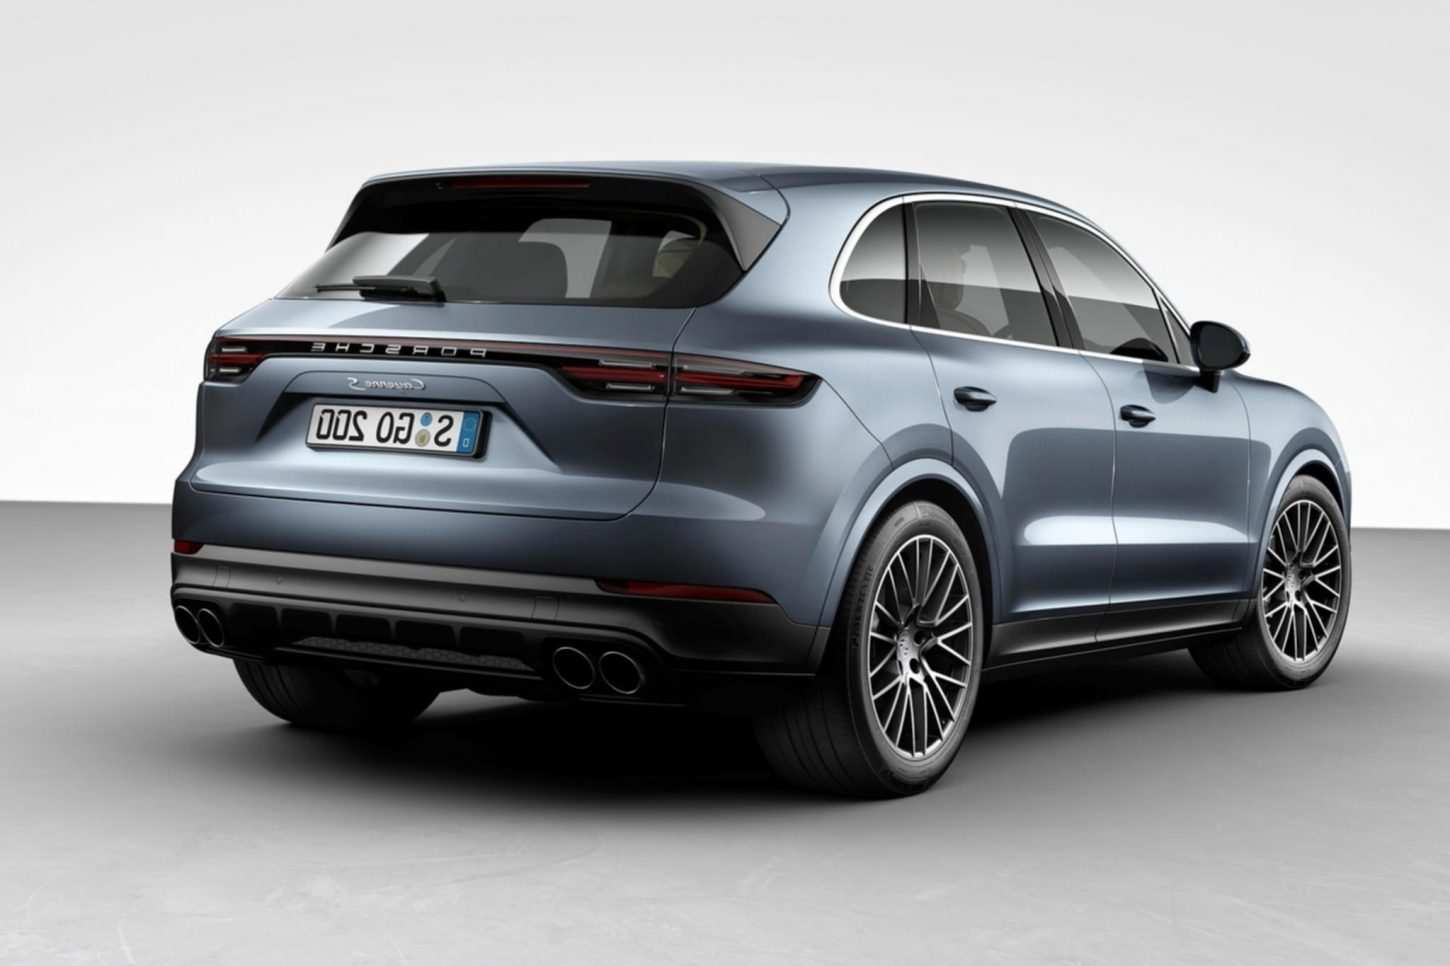 81 All New 2020 Porsche Macan Spy Shoot